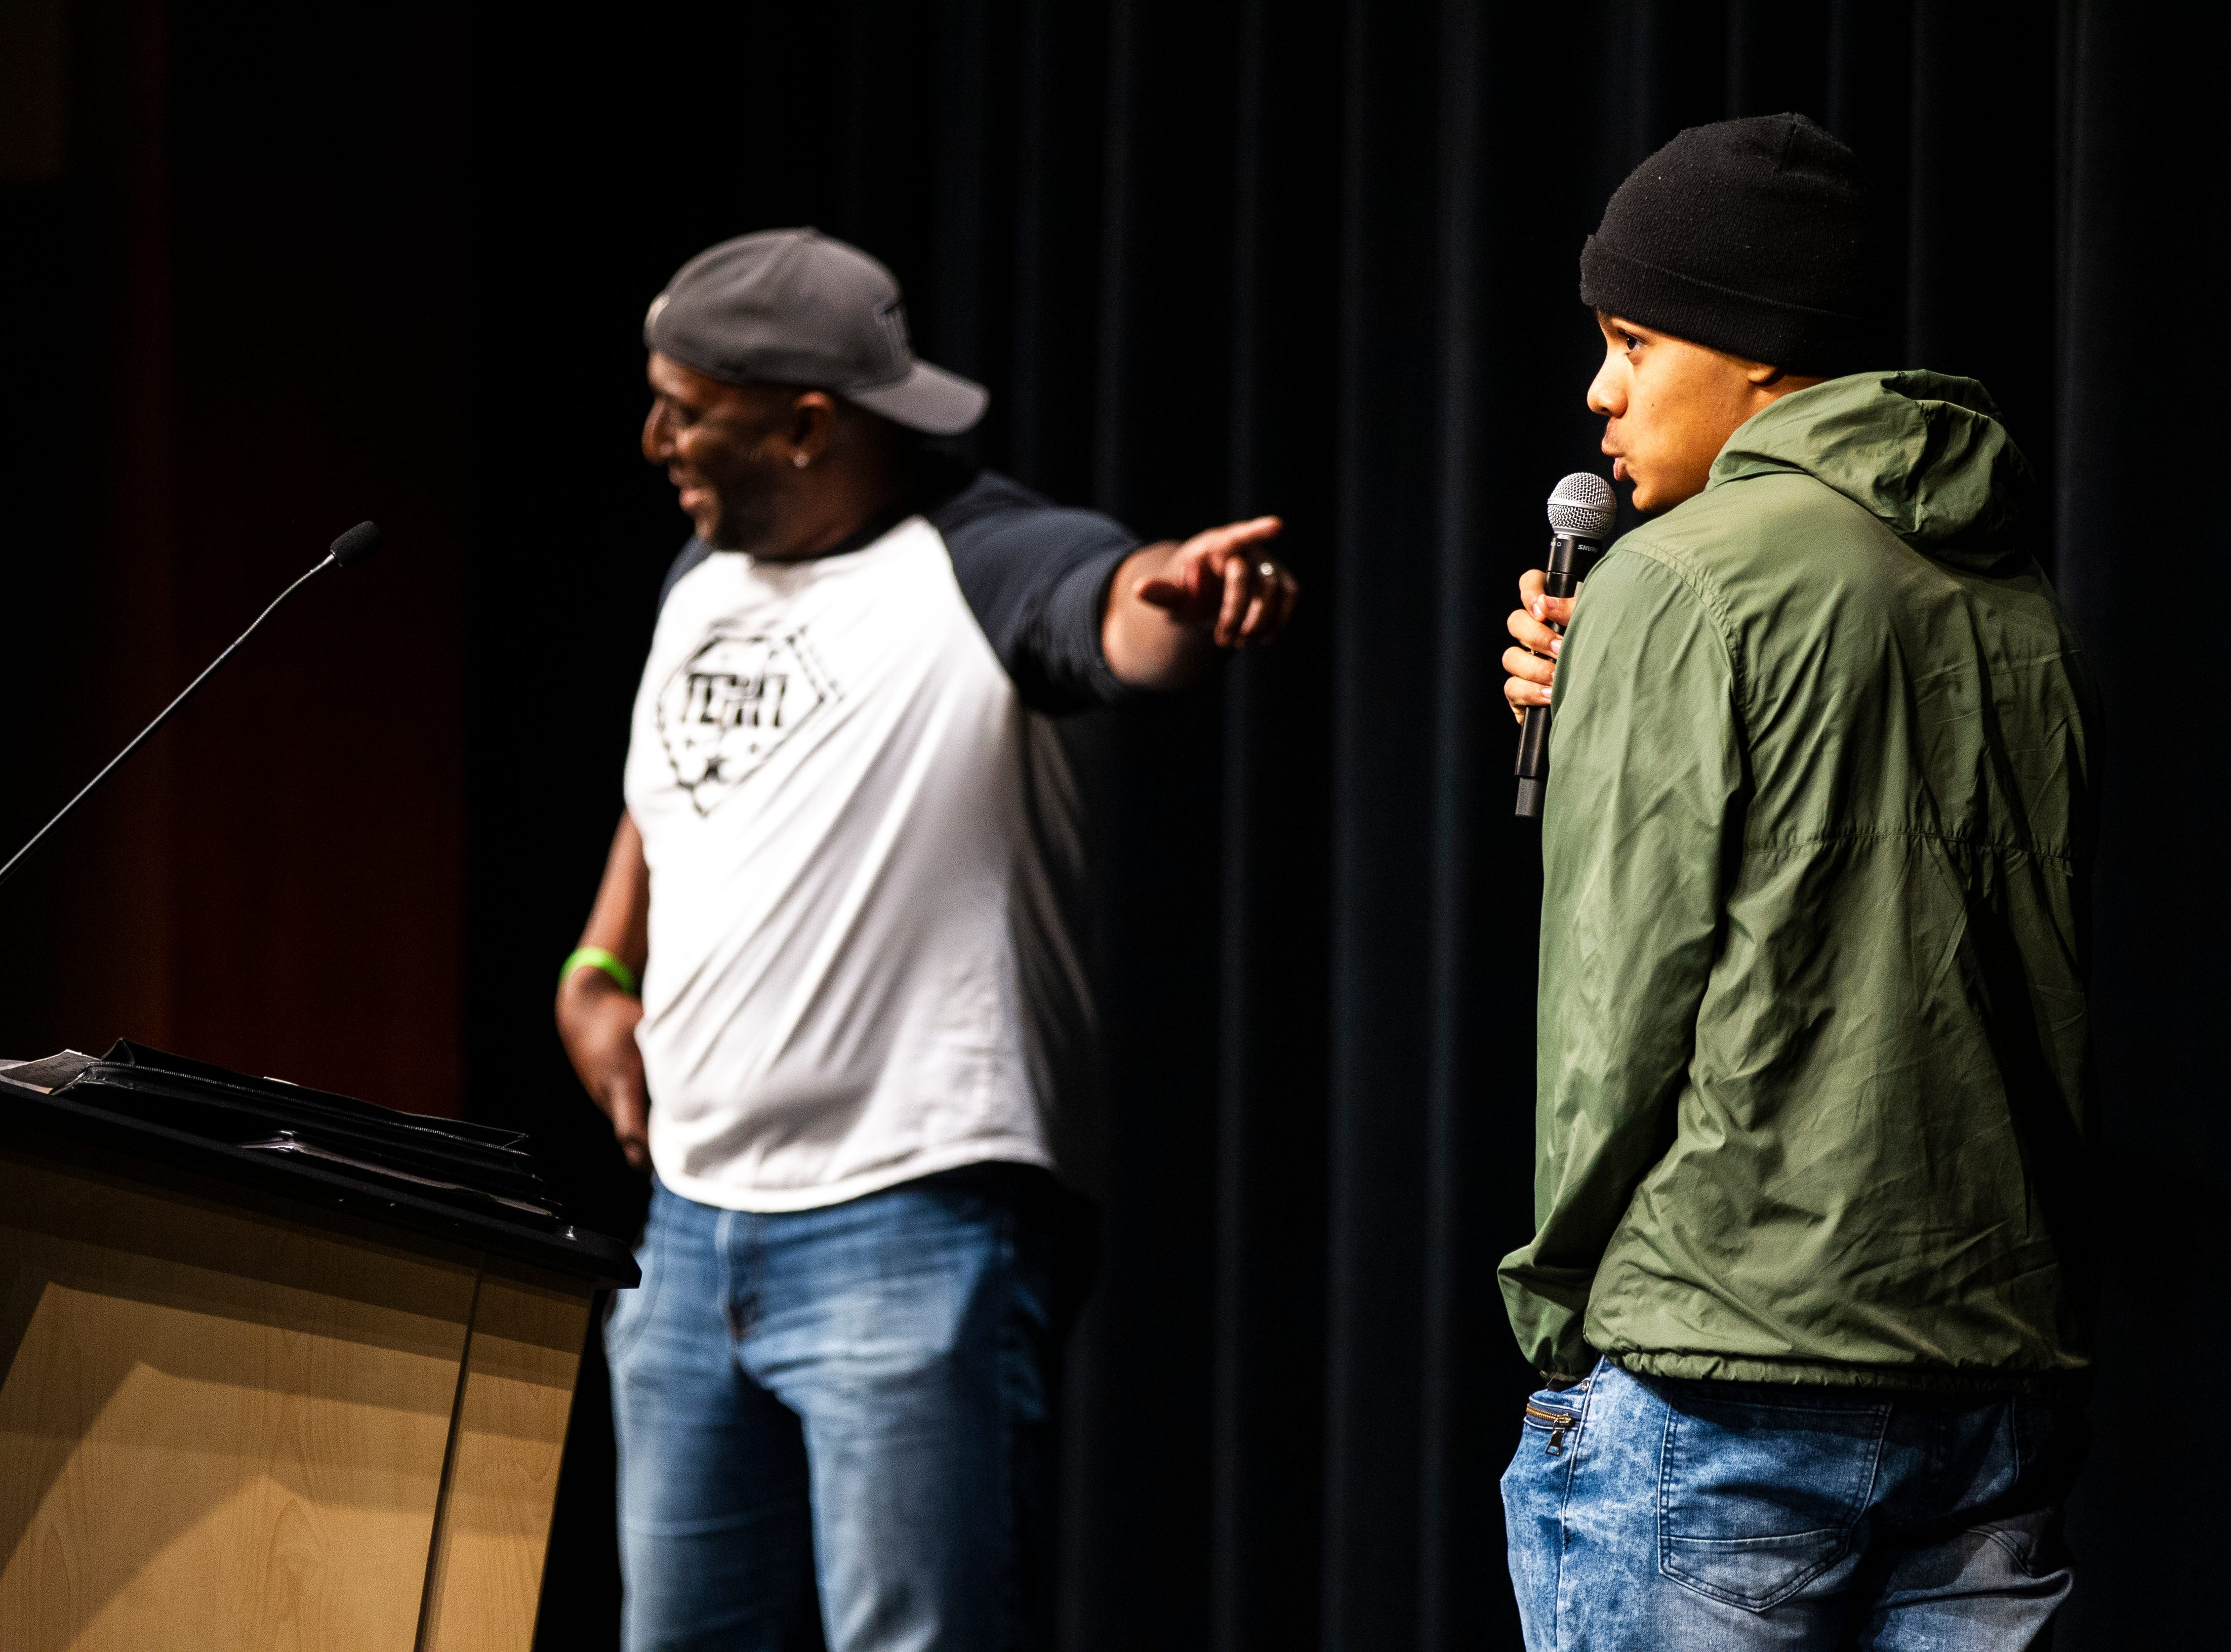 Liberty sophomore Quincy Jagnow, right, introduced Harvie Herrington during an MLK day event on Friday, Jan. 18, 2019, at Liberty High School in North Liberty, Iowa.